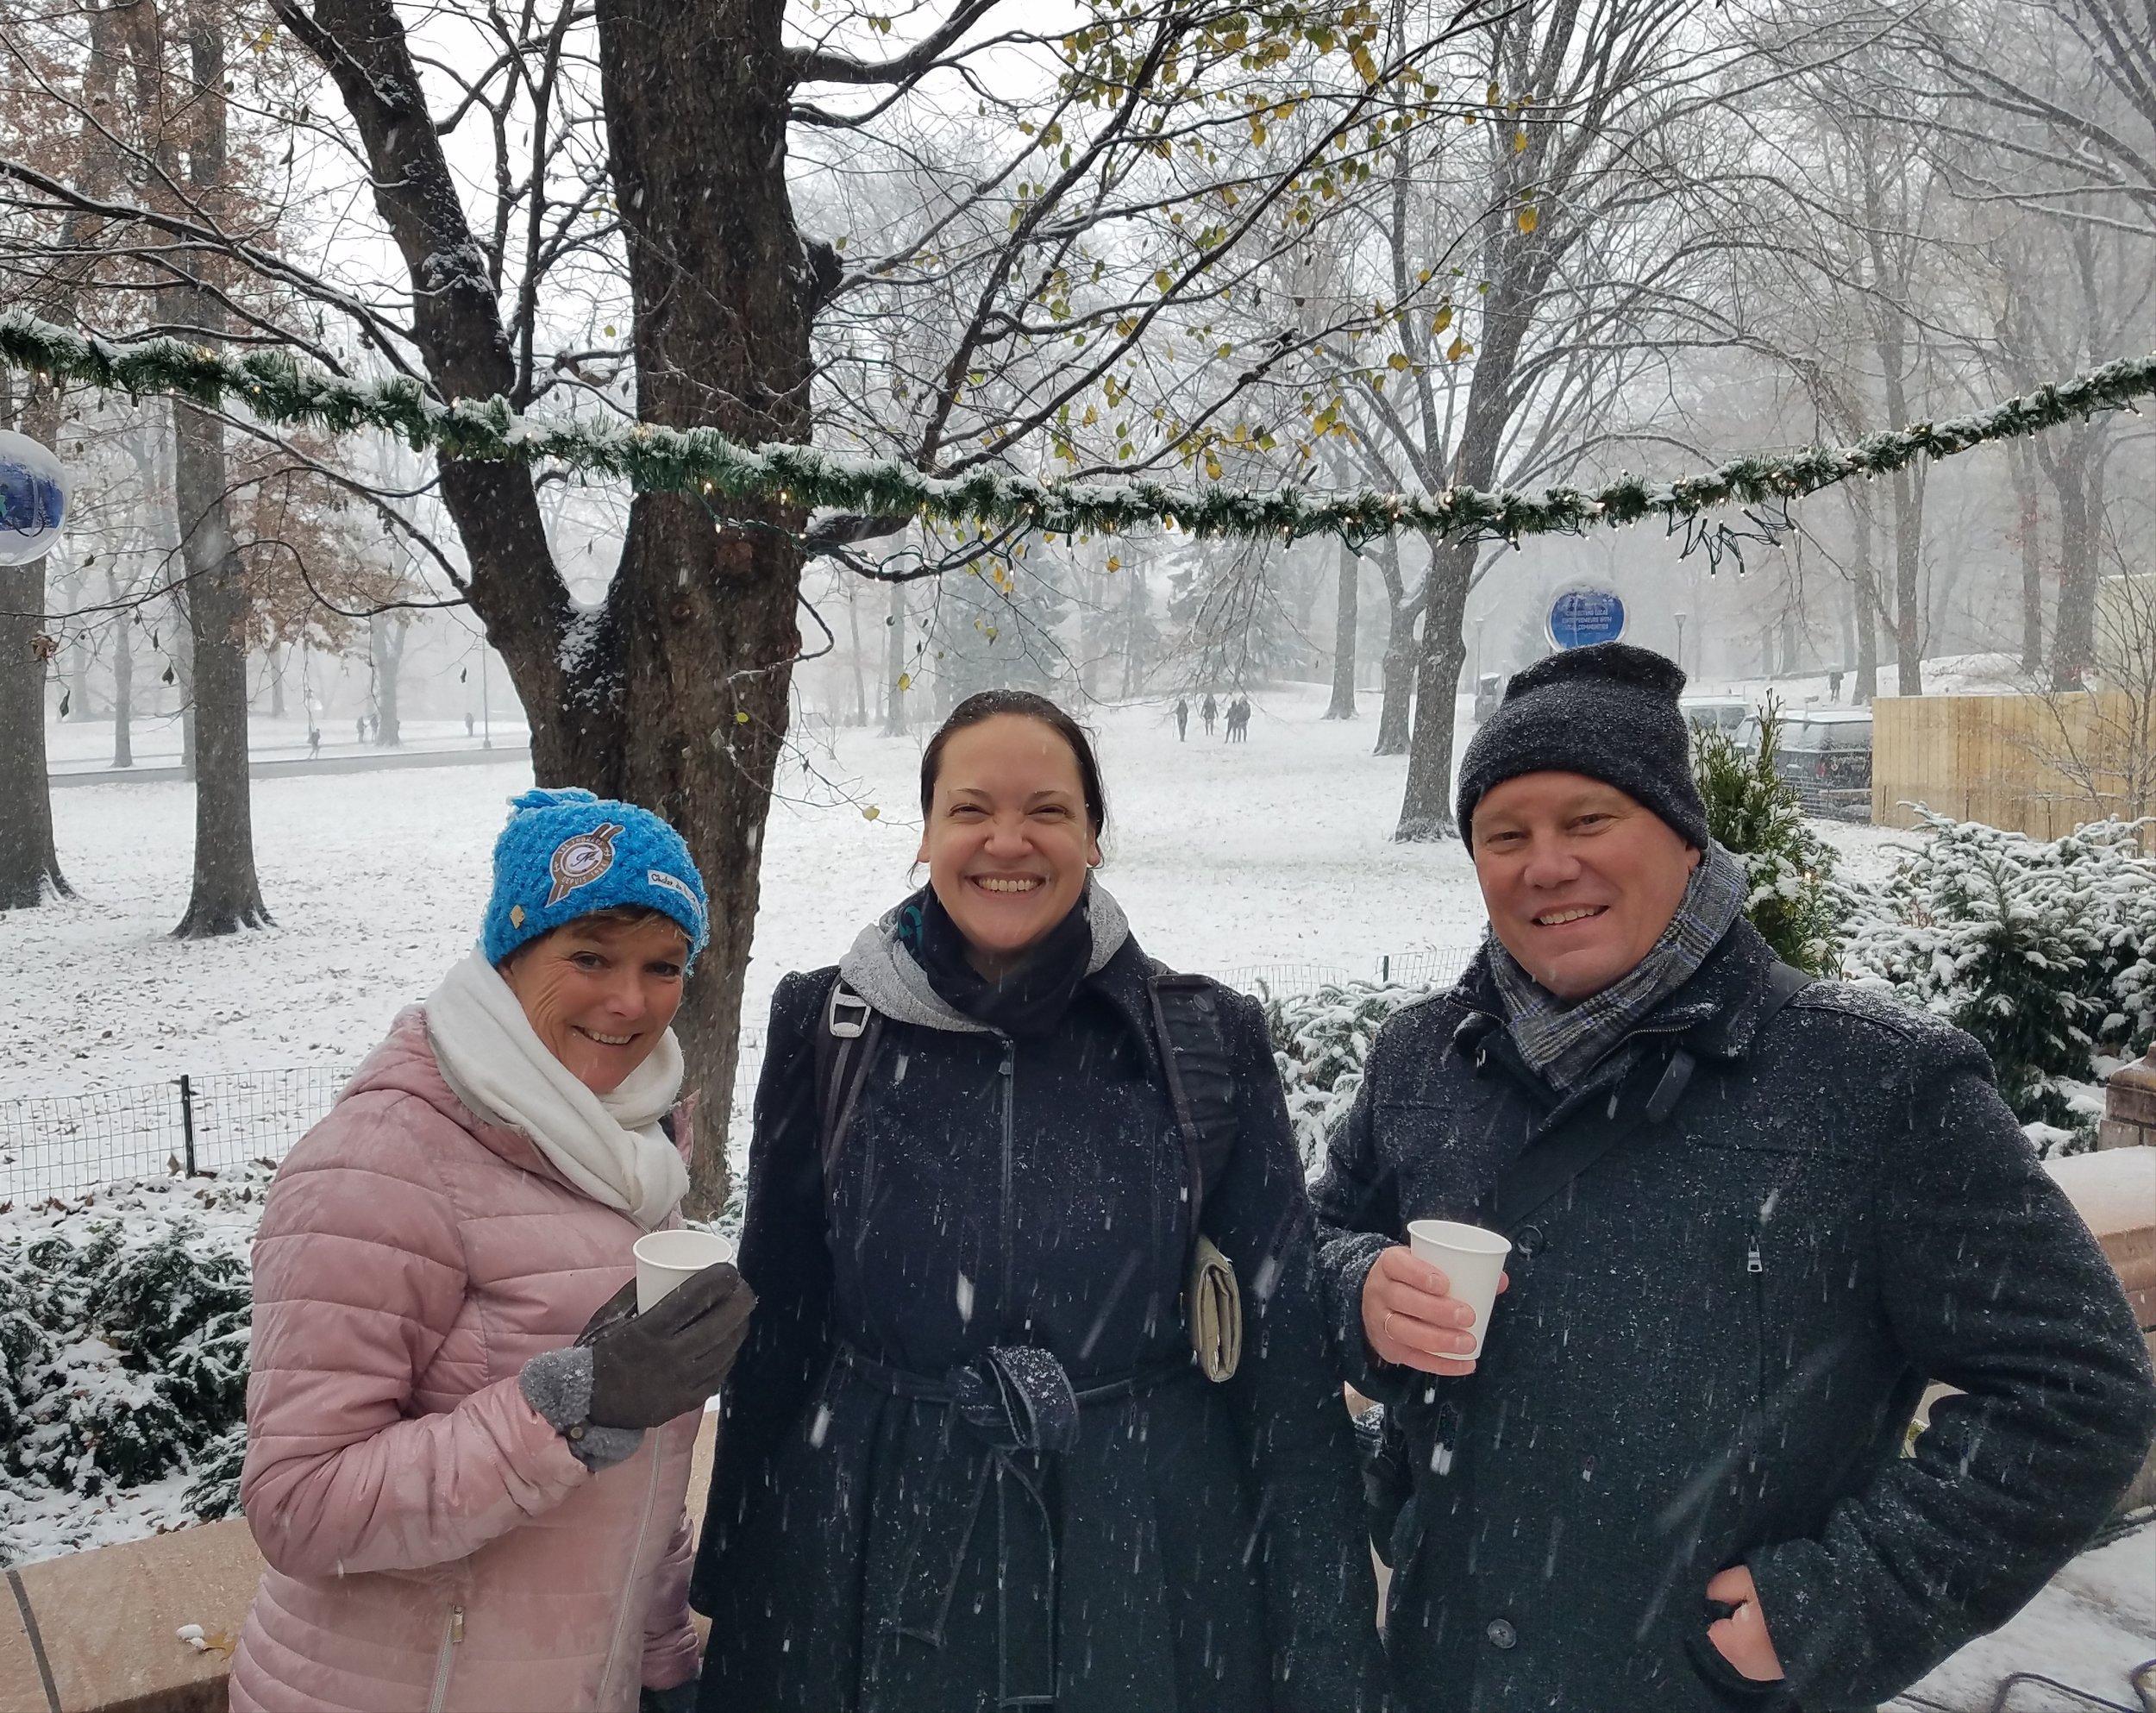 An extra special group for a New York tour guide--some Dutch guests enjoying the snow and hot beverages for a very festive feasting indeed!